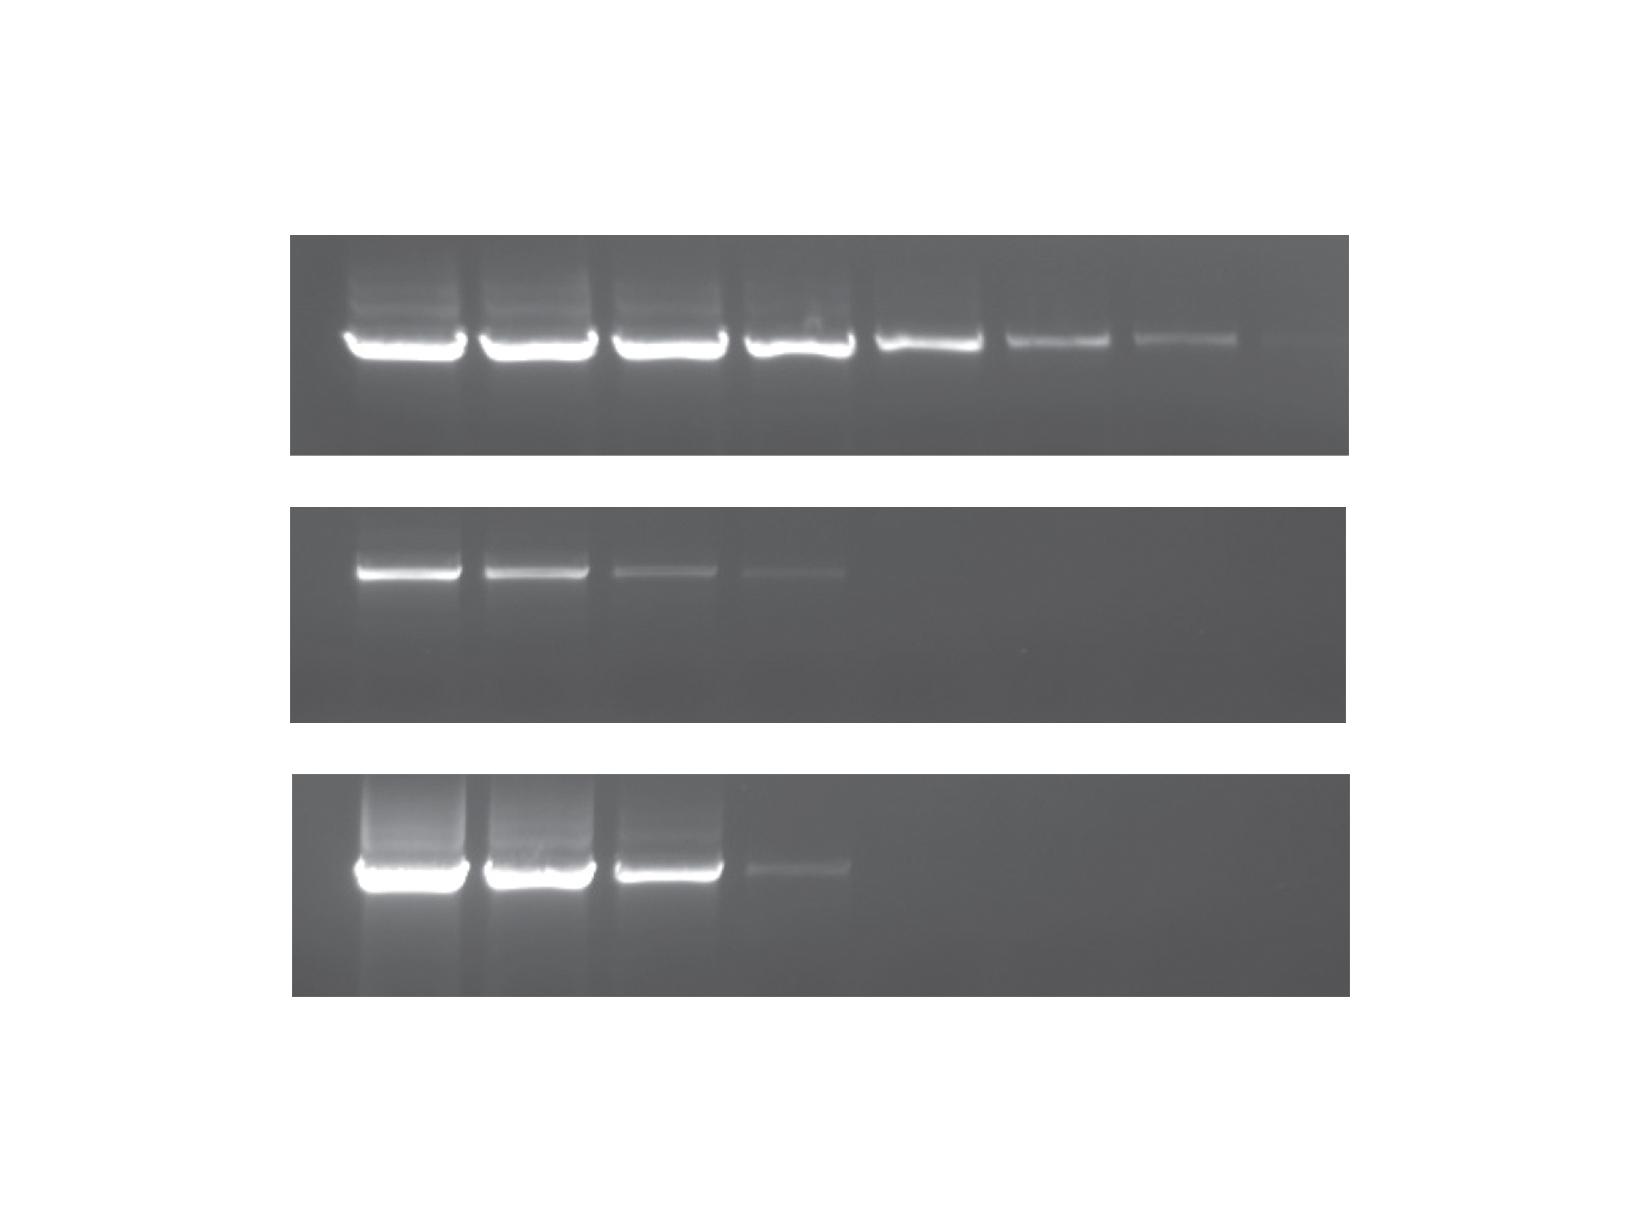 PCRBIO Taq DNA Polymerase competitor comparison gel image